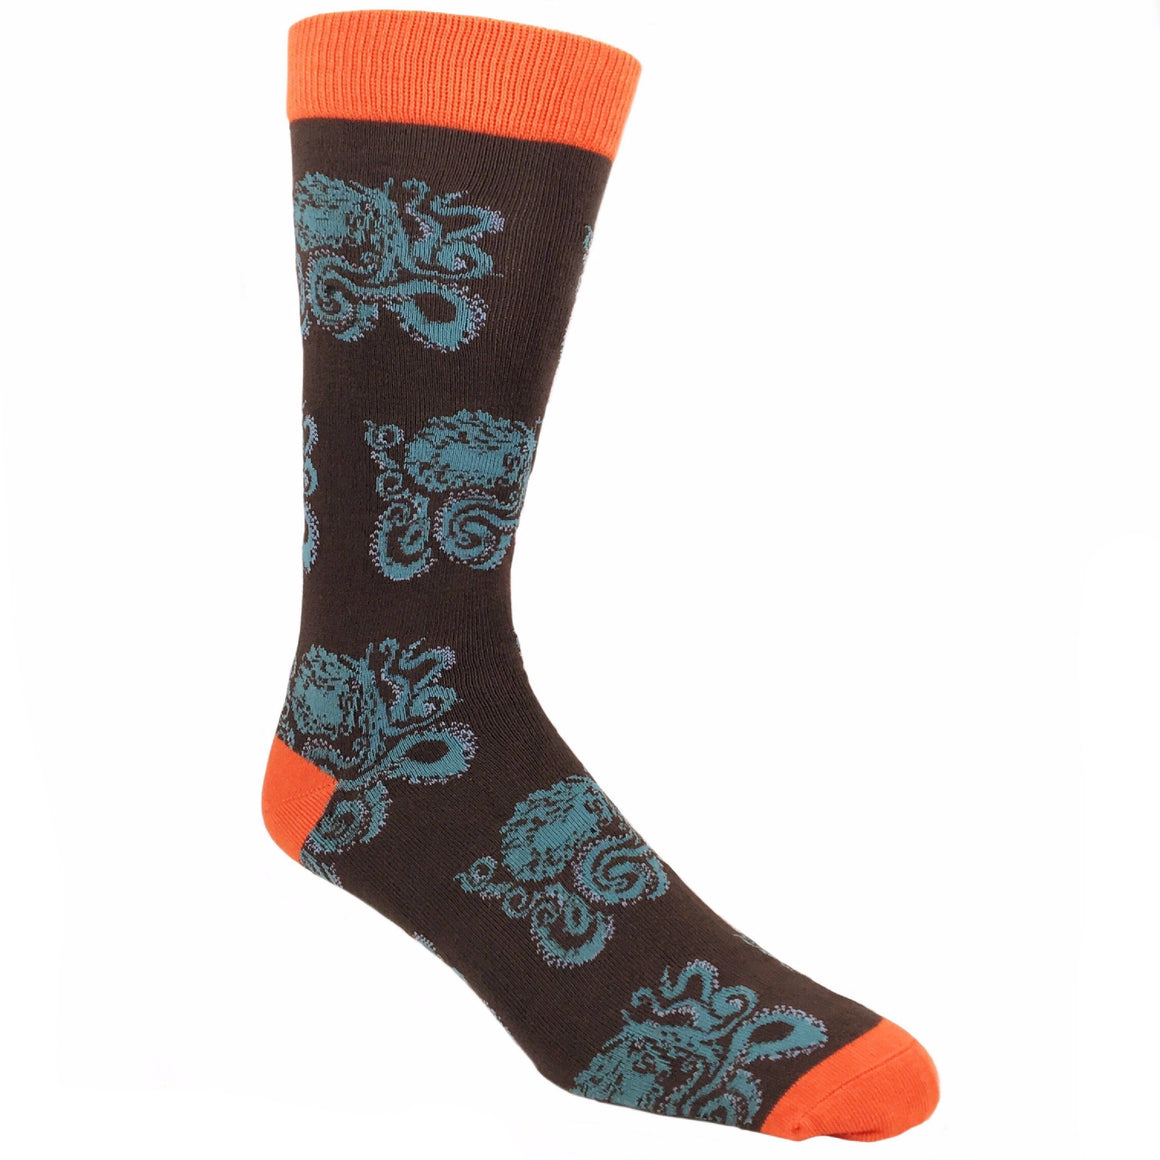 Socks - Kraken All Over Bamboo Socks -Brown